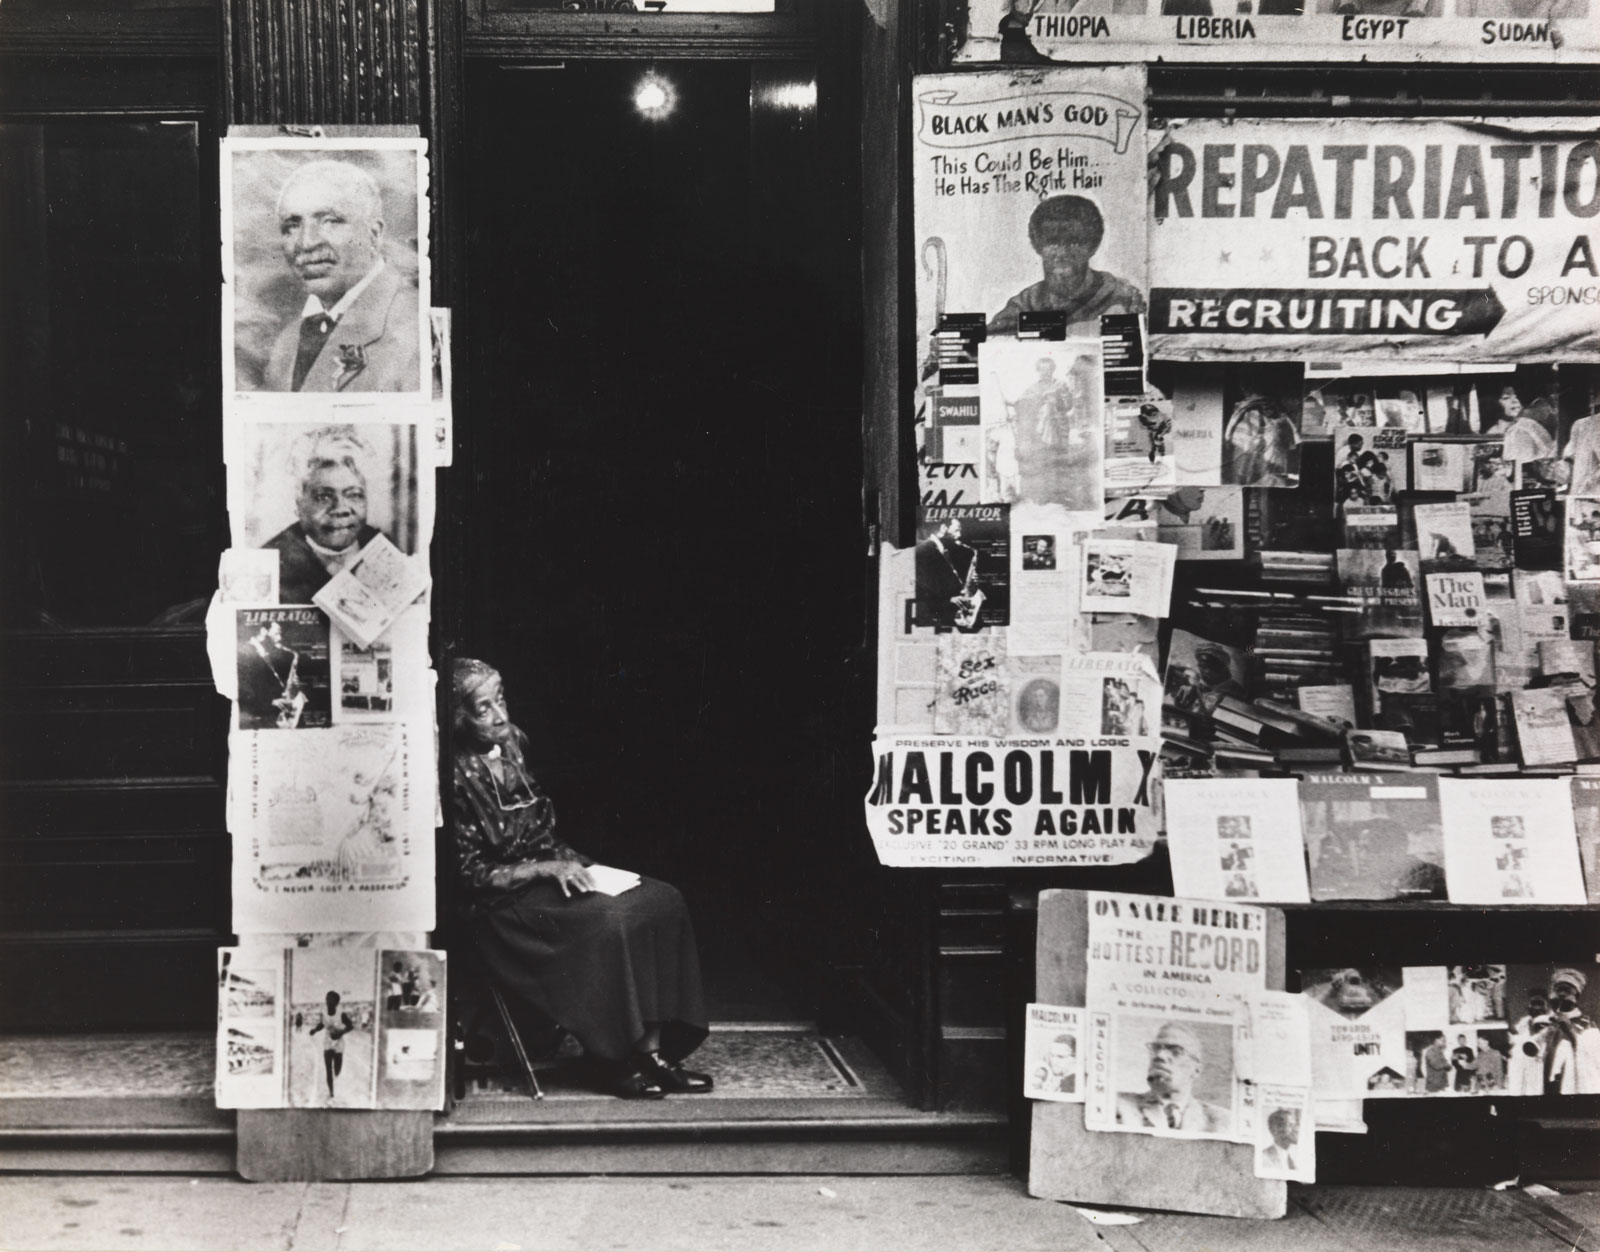 A woman sitting in a doorway nearby a newsstand